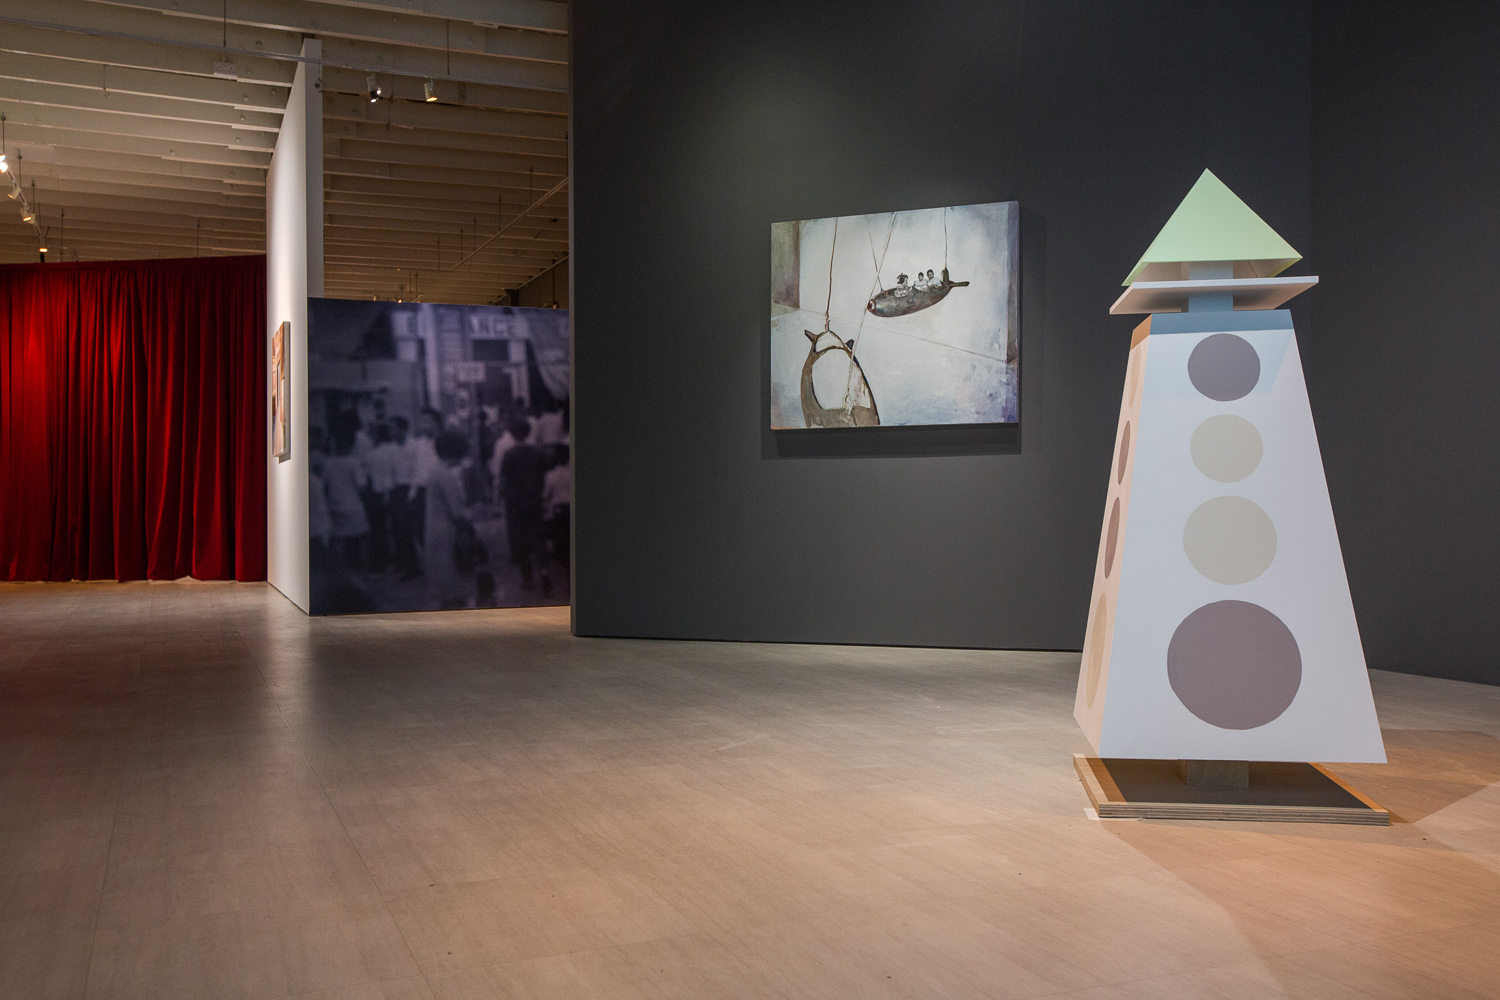 Hilmi Johandi, 'An Exposition' installation view, 2018, oil on canvas, three-channel video, digital print on vinyl sticker mounted on wood, synthetic polymer paint, plywood and mild steel, dimensions variable. Image courtesy of Singapore Art Museum.